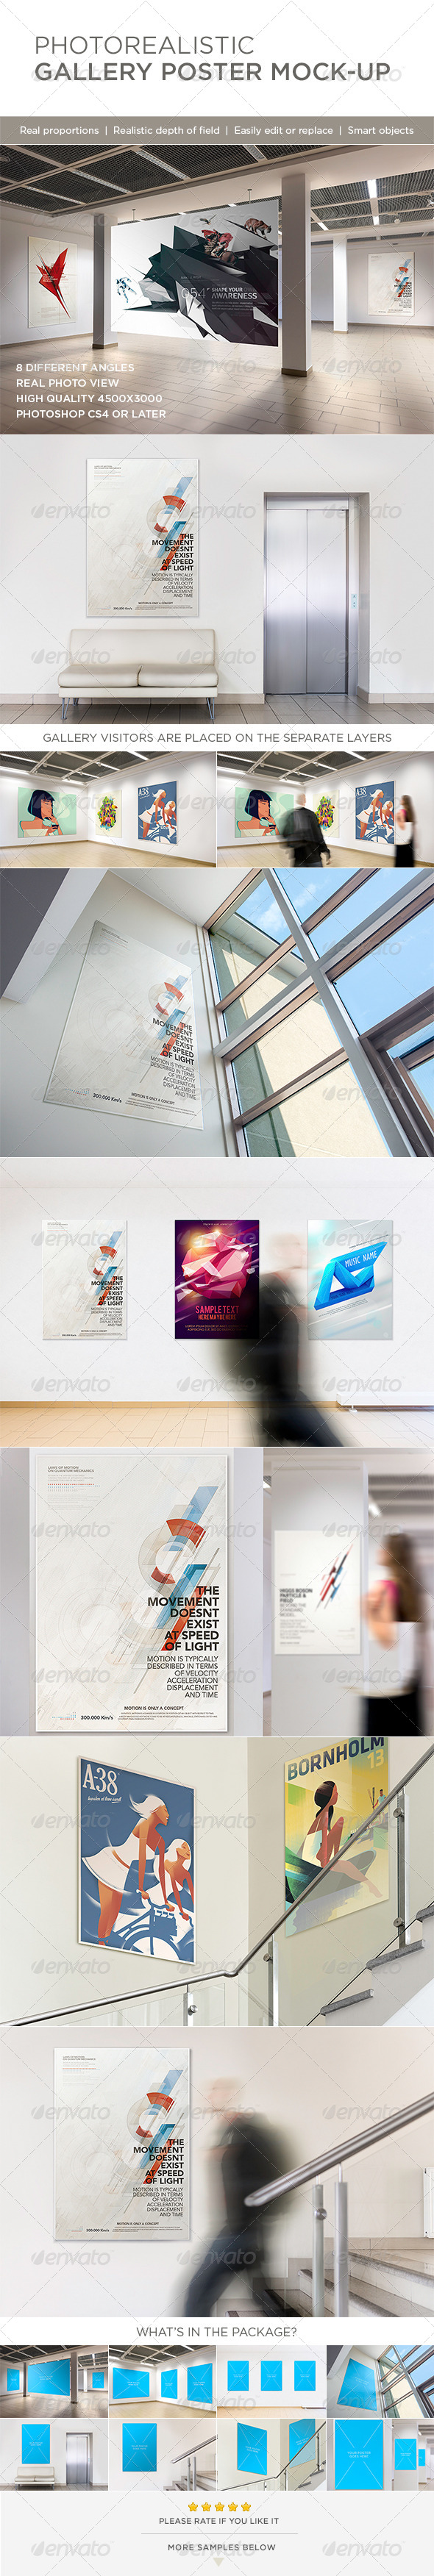 GraphicRiver Photorealistic Gallery Poster Mock-Up 5146905